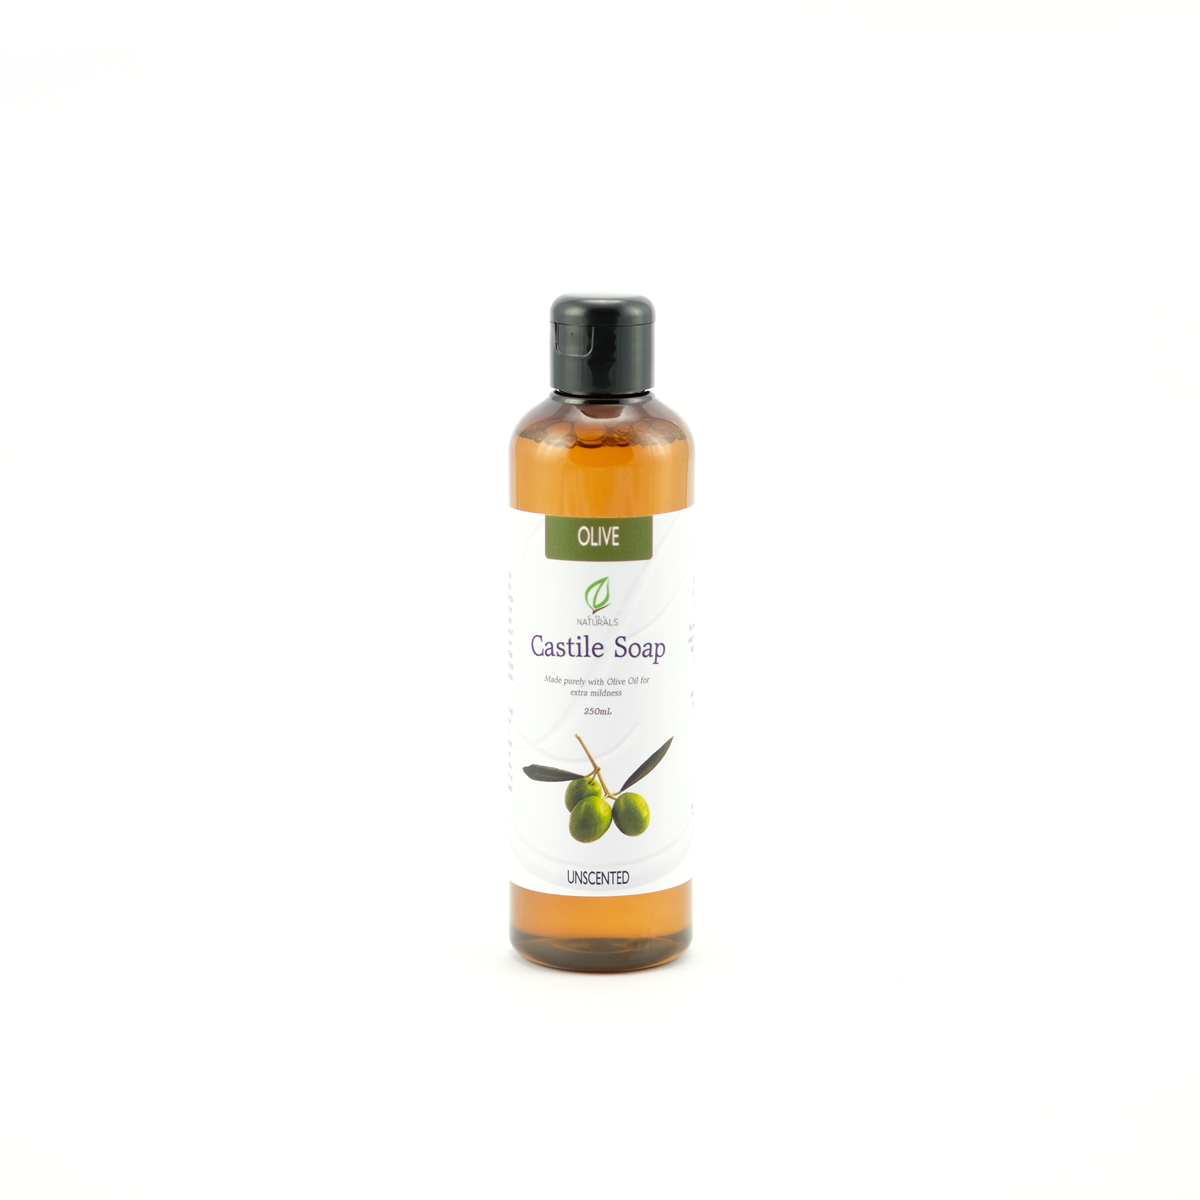 Unscented Olive Castile Soap Refill